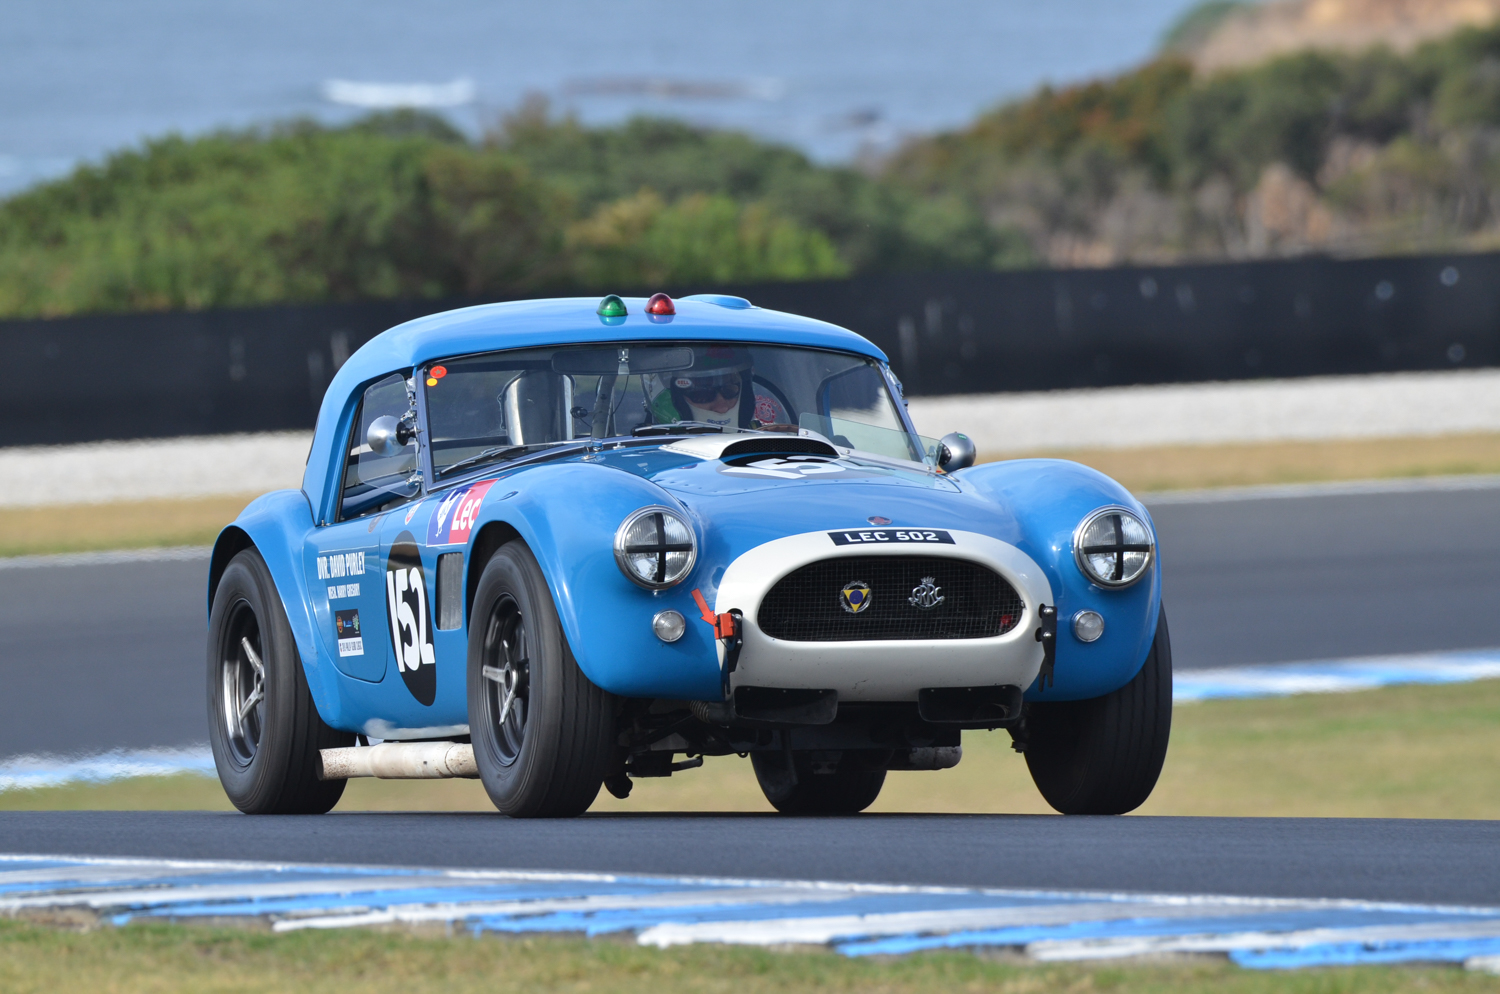 David Cooke visiting from the UK in his AC Cobra. Neil Hammond Photo.